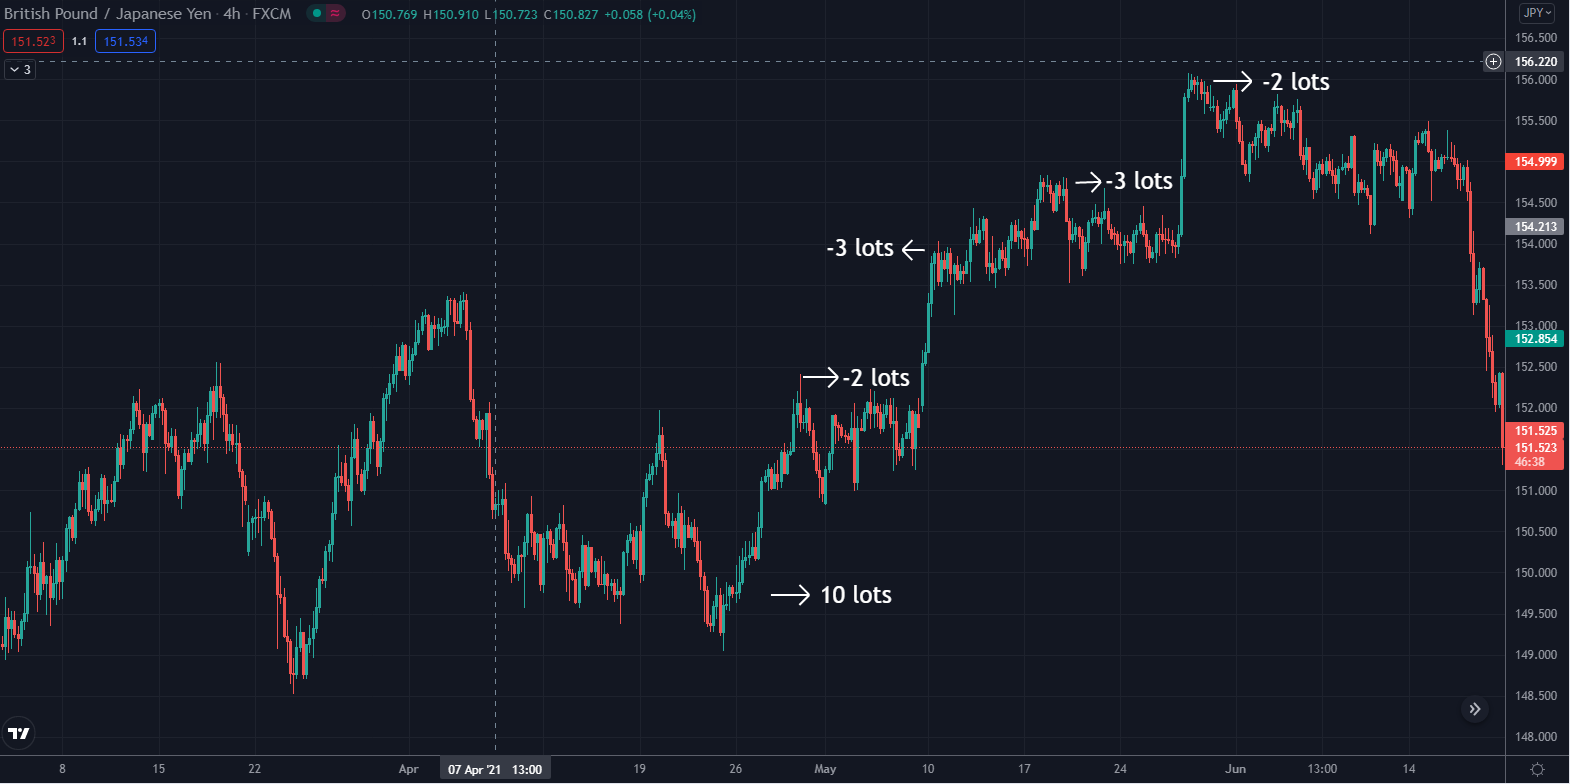 GBPJPY uptrend May 2021